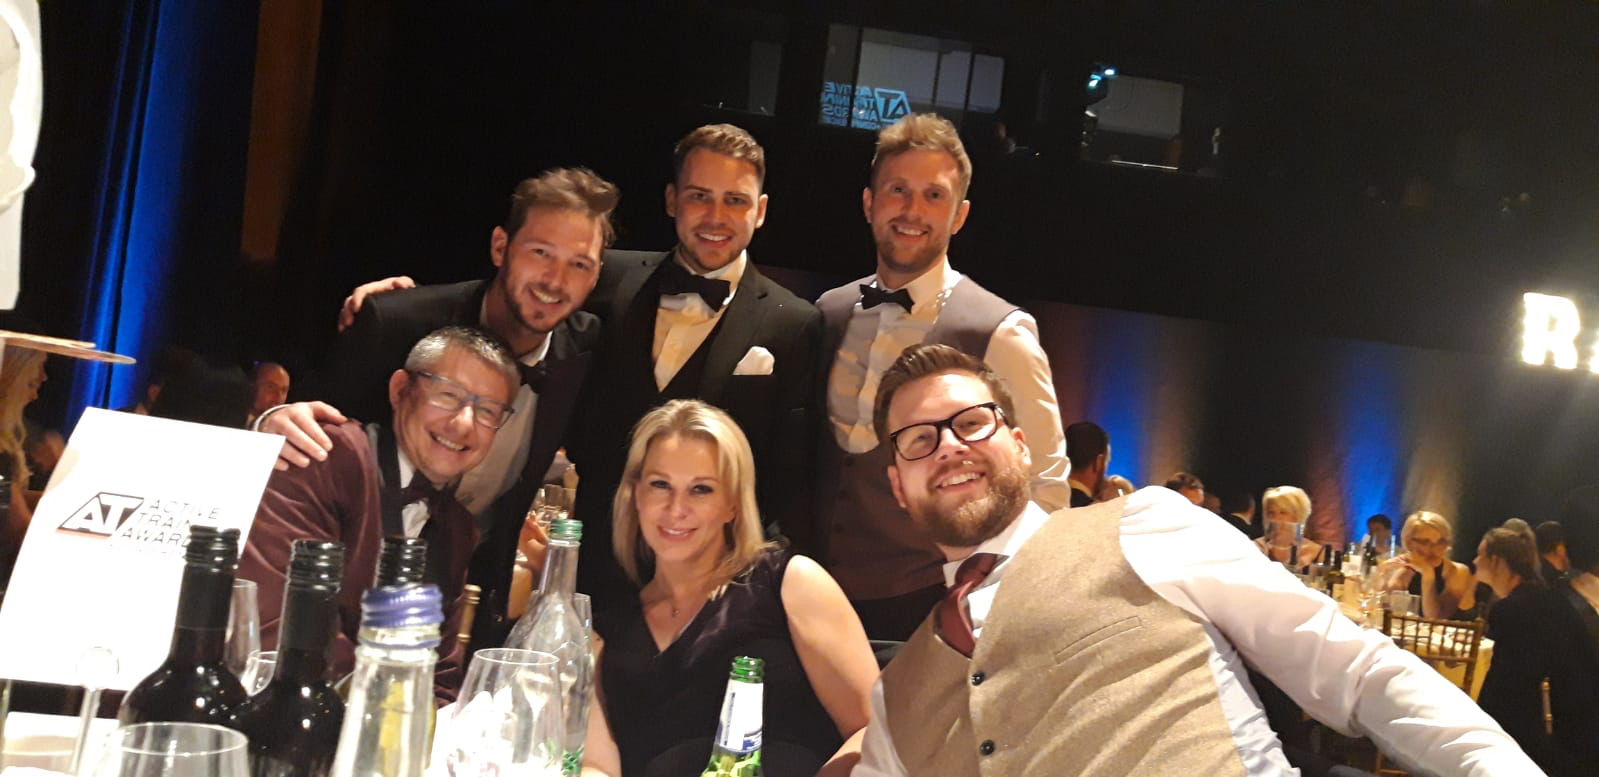 The Future Fit team celebrate  their success at the ukactive Active Training Awards 2018.